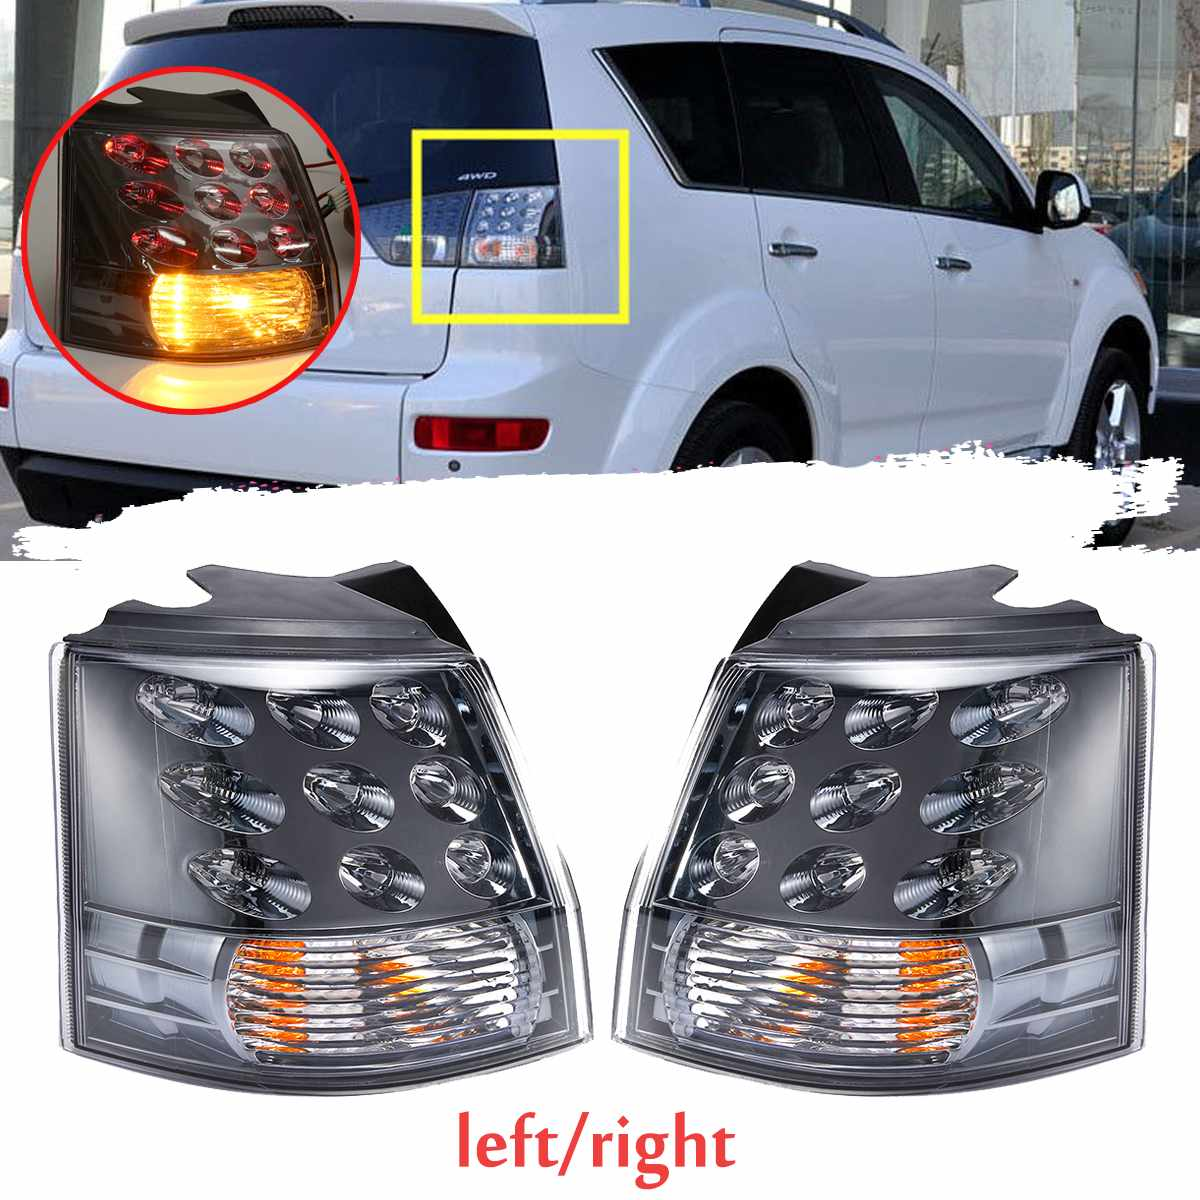 Rear Tail <font><b>light</b></font> Outer Outside Brake <font><b>Light</b></font> LED Lamp for <font><b>Mitsubishis</b></font> <font><b>Outlander</b></font> EX 2007 <font><b>2008</b></font> 2009 2010 2011 2012 2013 image